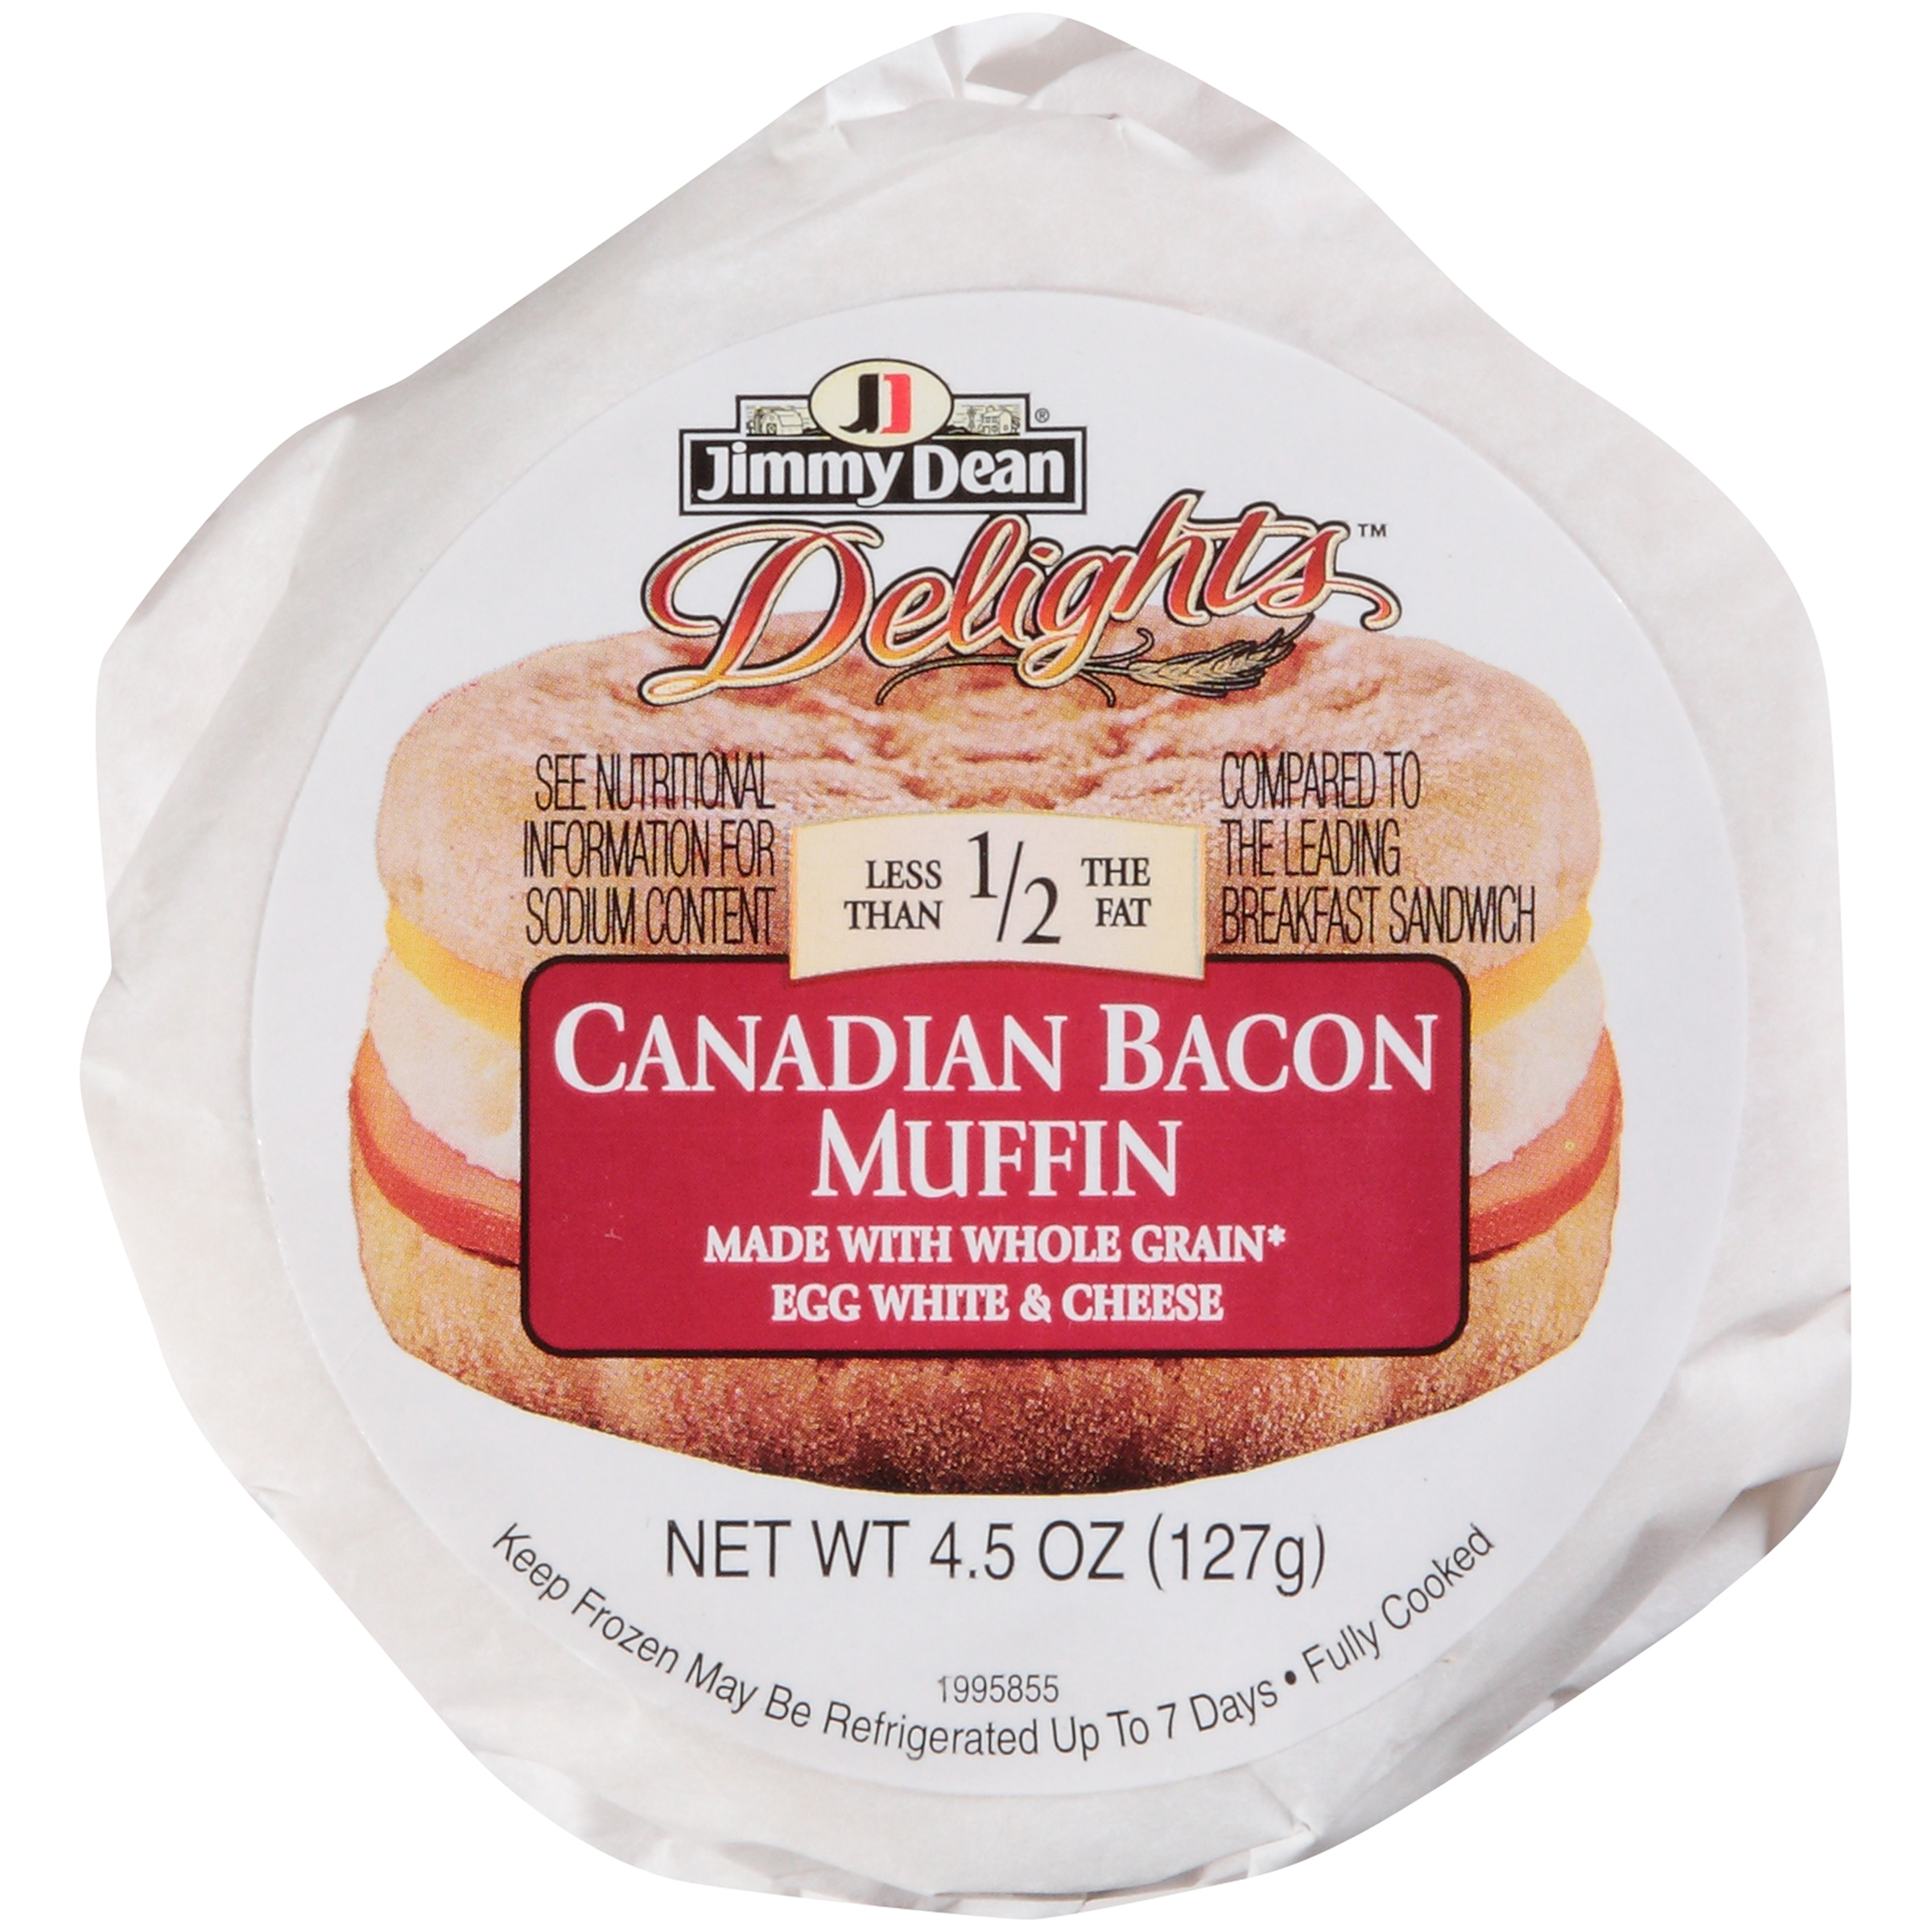 Jimmy Dean D-Lights Canadian Bacon w/ Egg Whites and Cheese Muffin Sandwich, 4.5 oz., 12 per case